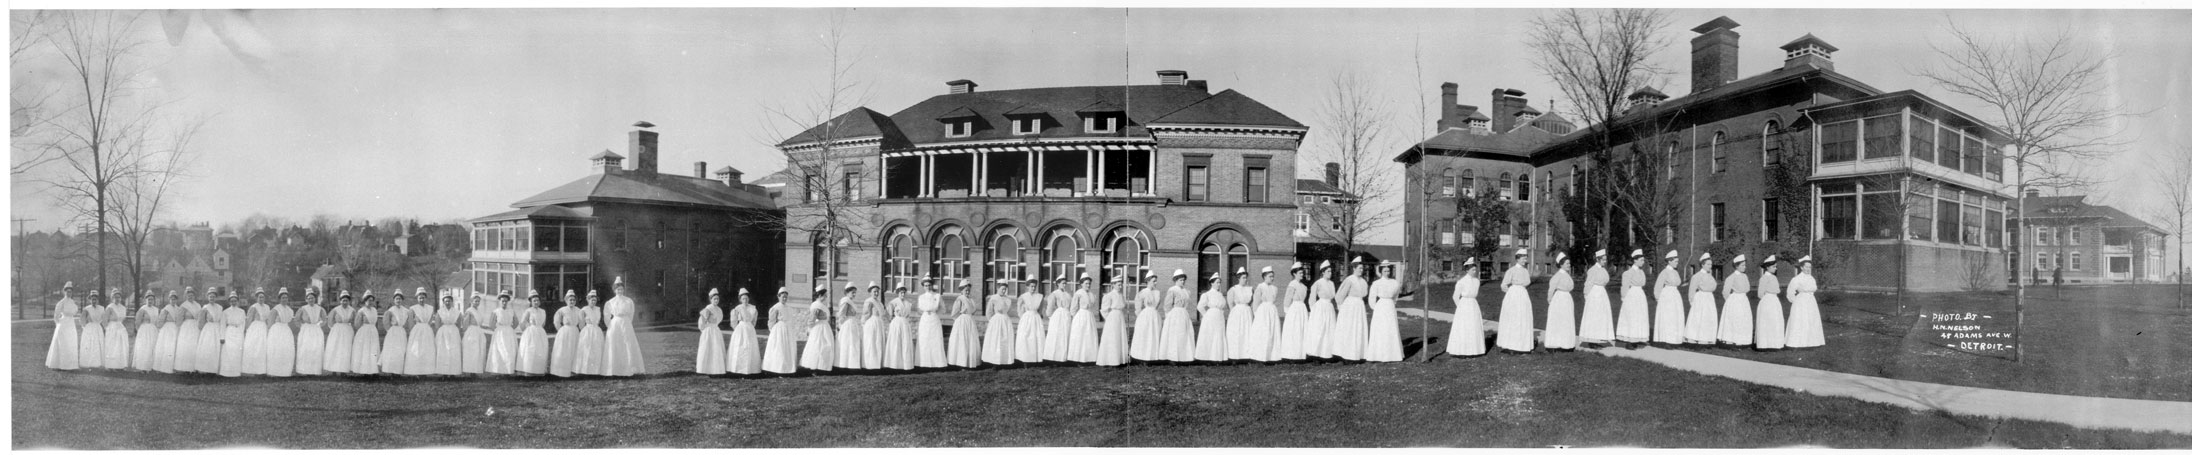 Nurses pose on Catherine Street, 1910 image